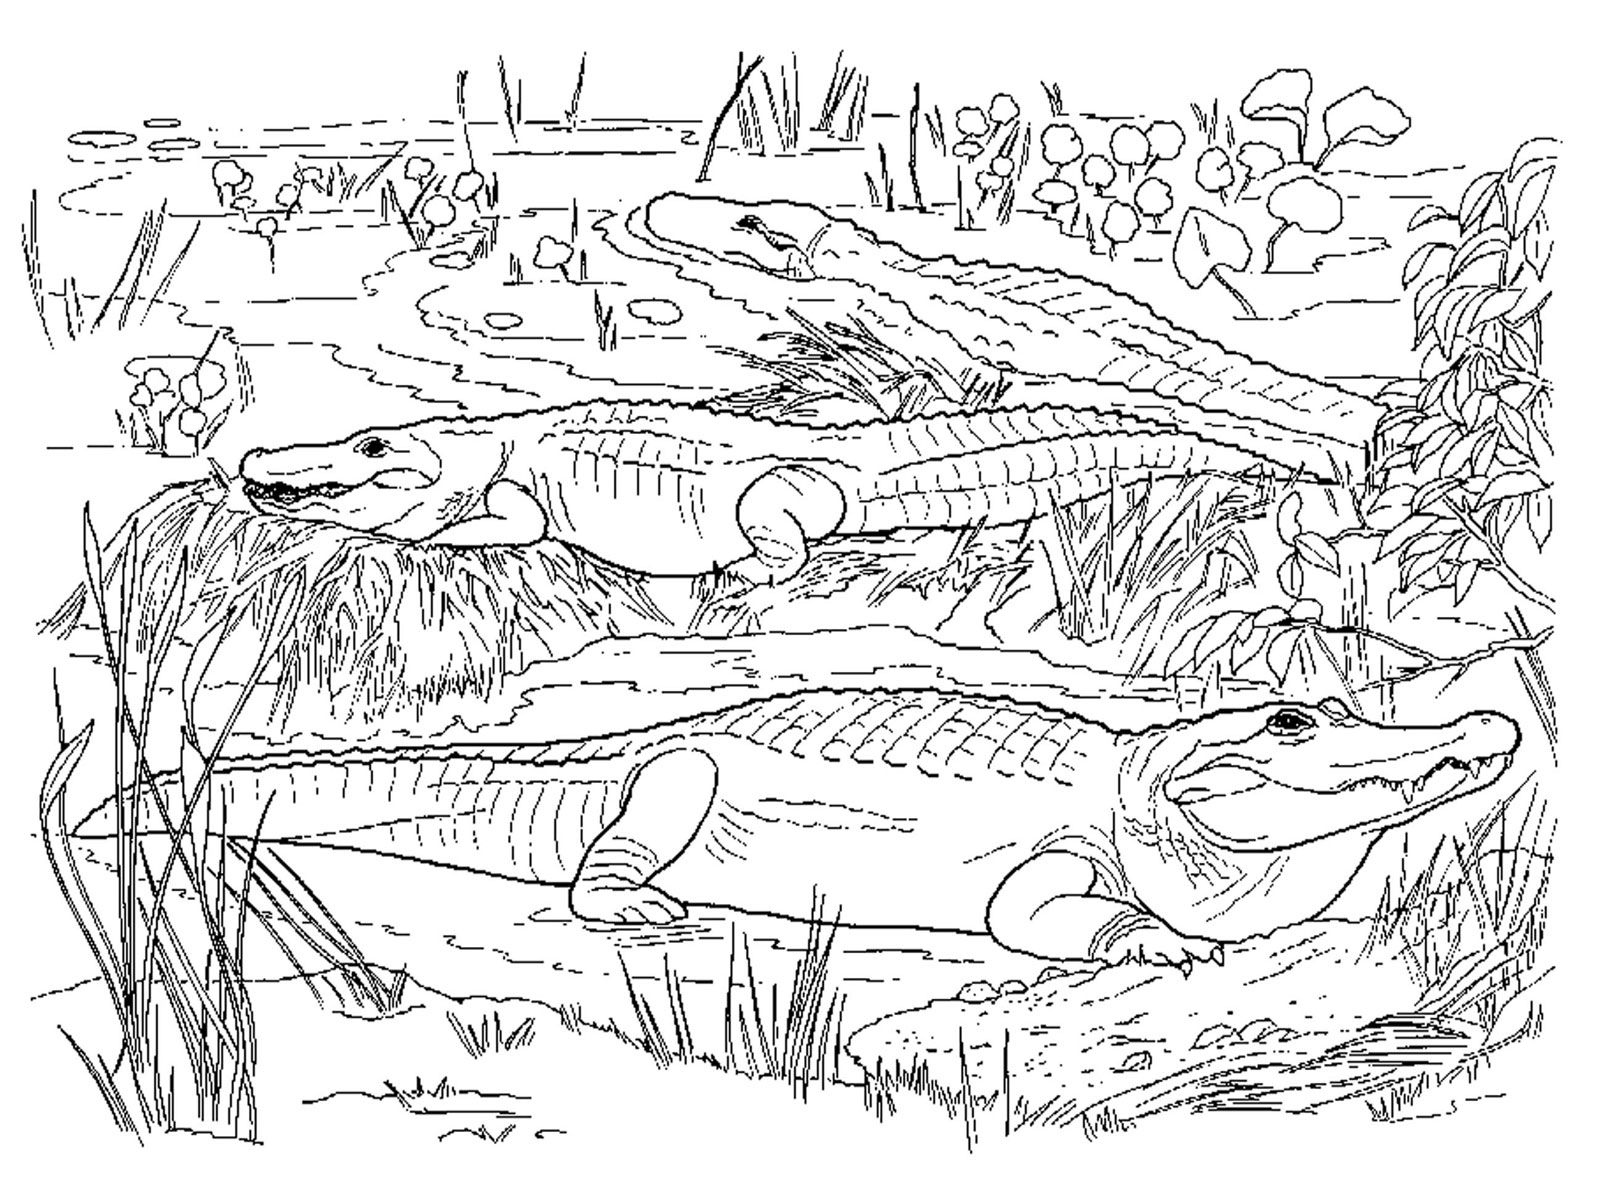 Realistic Alligator Coloring Pages Animal coloring pages